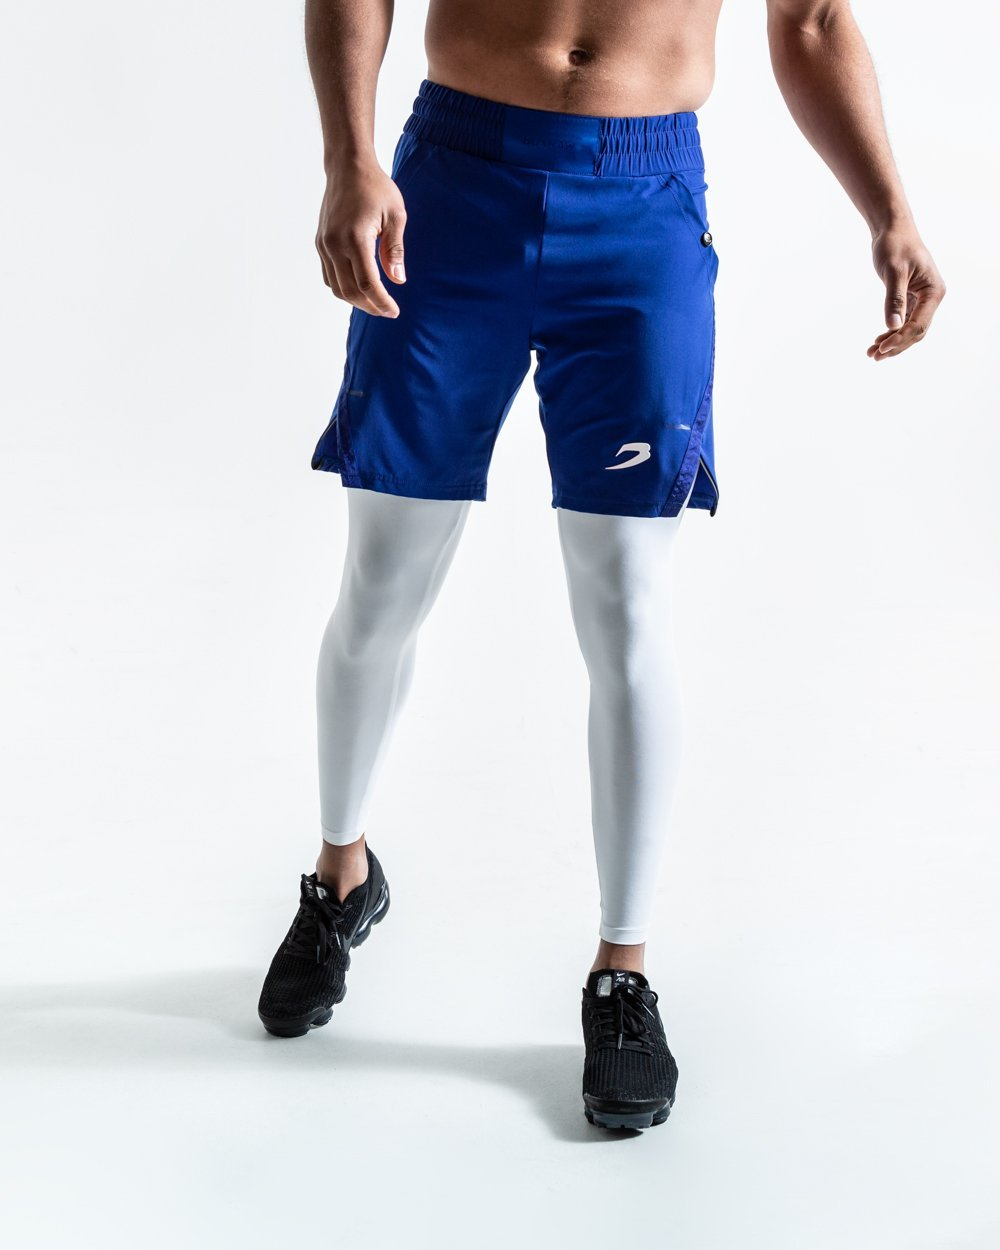 PEP SHORTS (2-IN-1 TRAINING TIGHTS) - BLUE - Pandemic Fight Gear Inc.